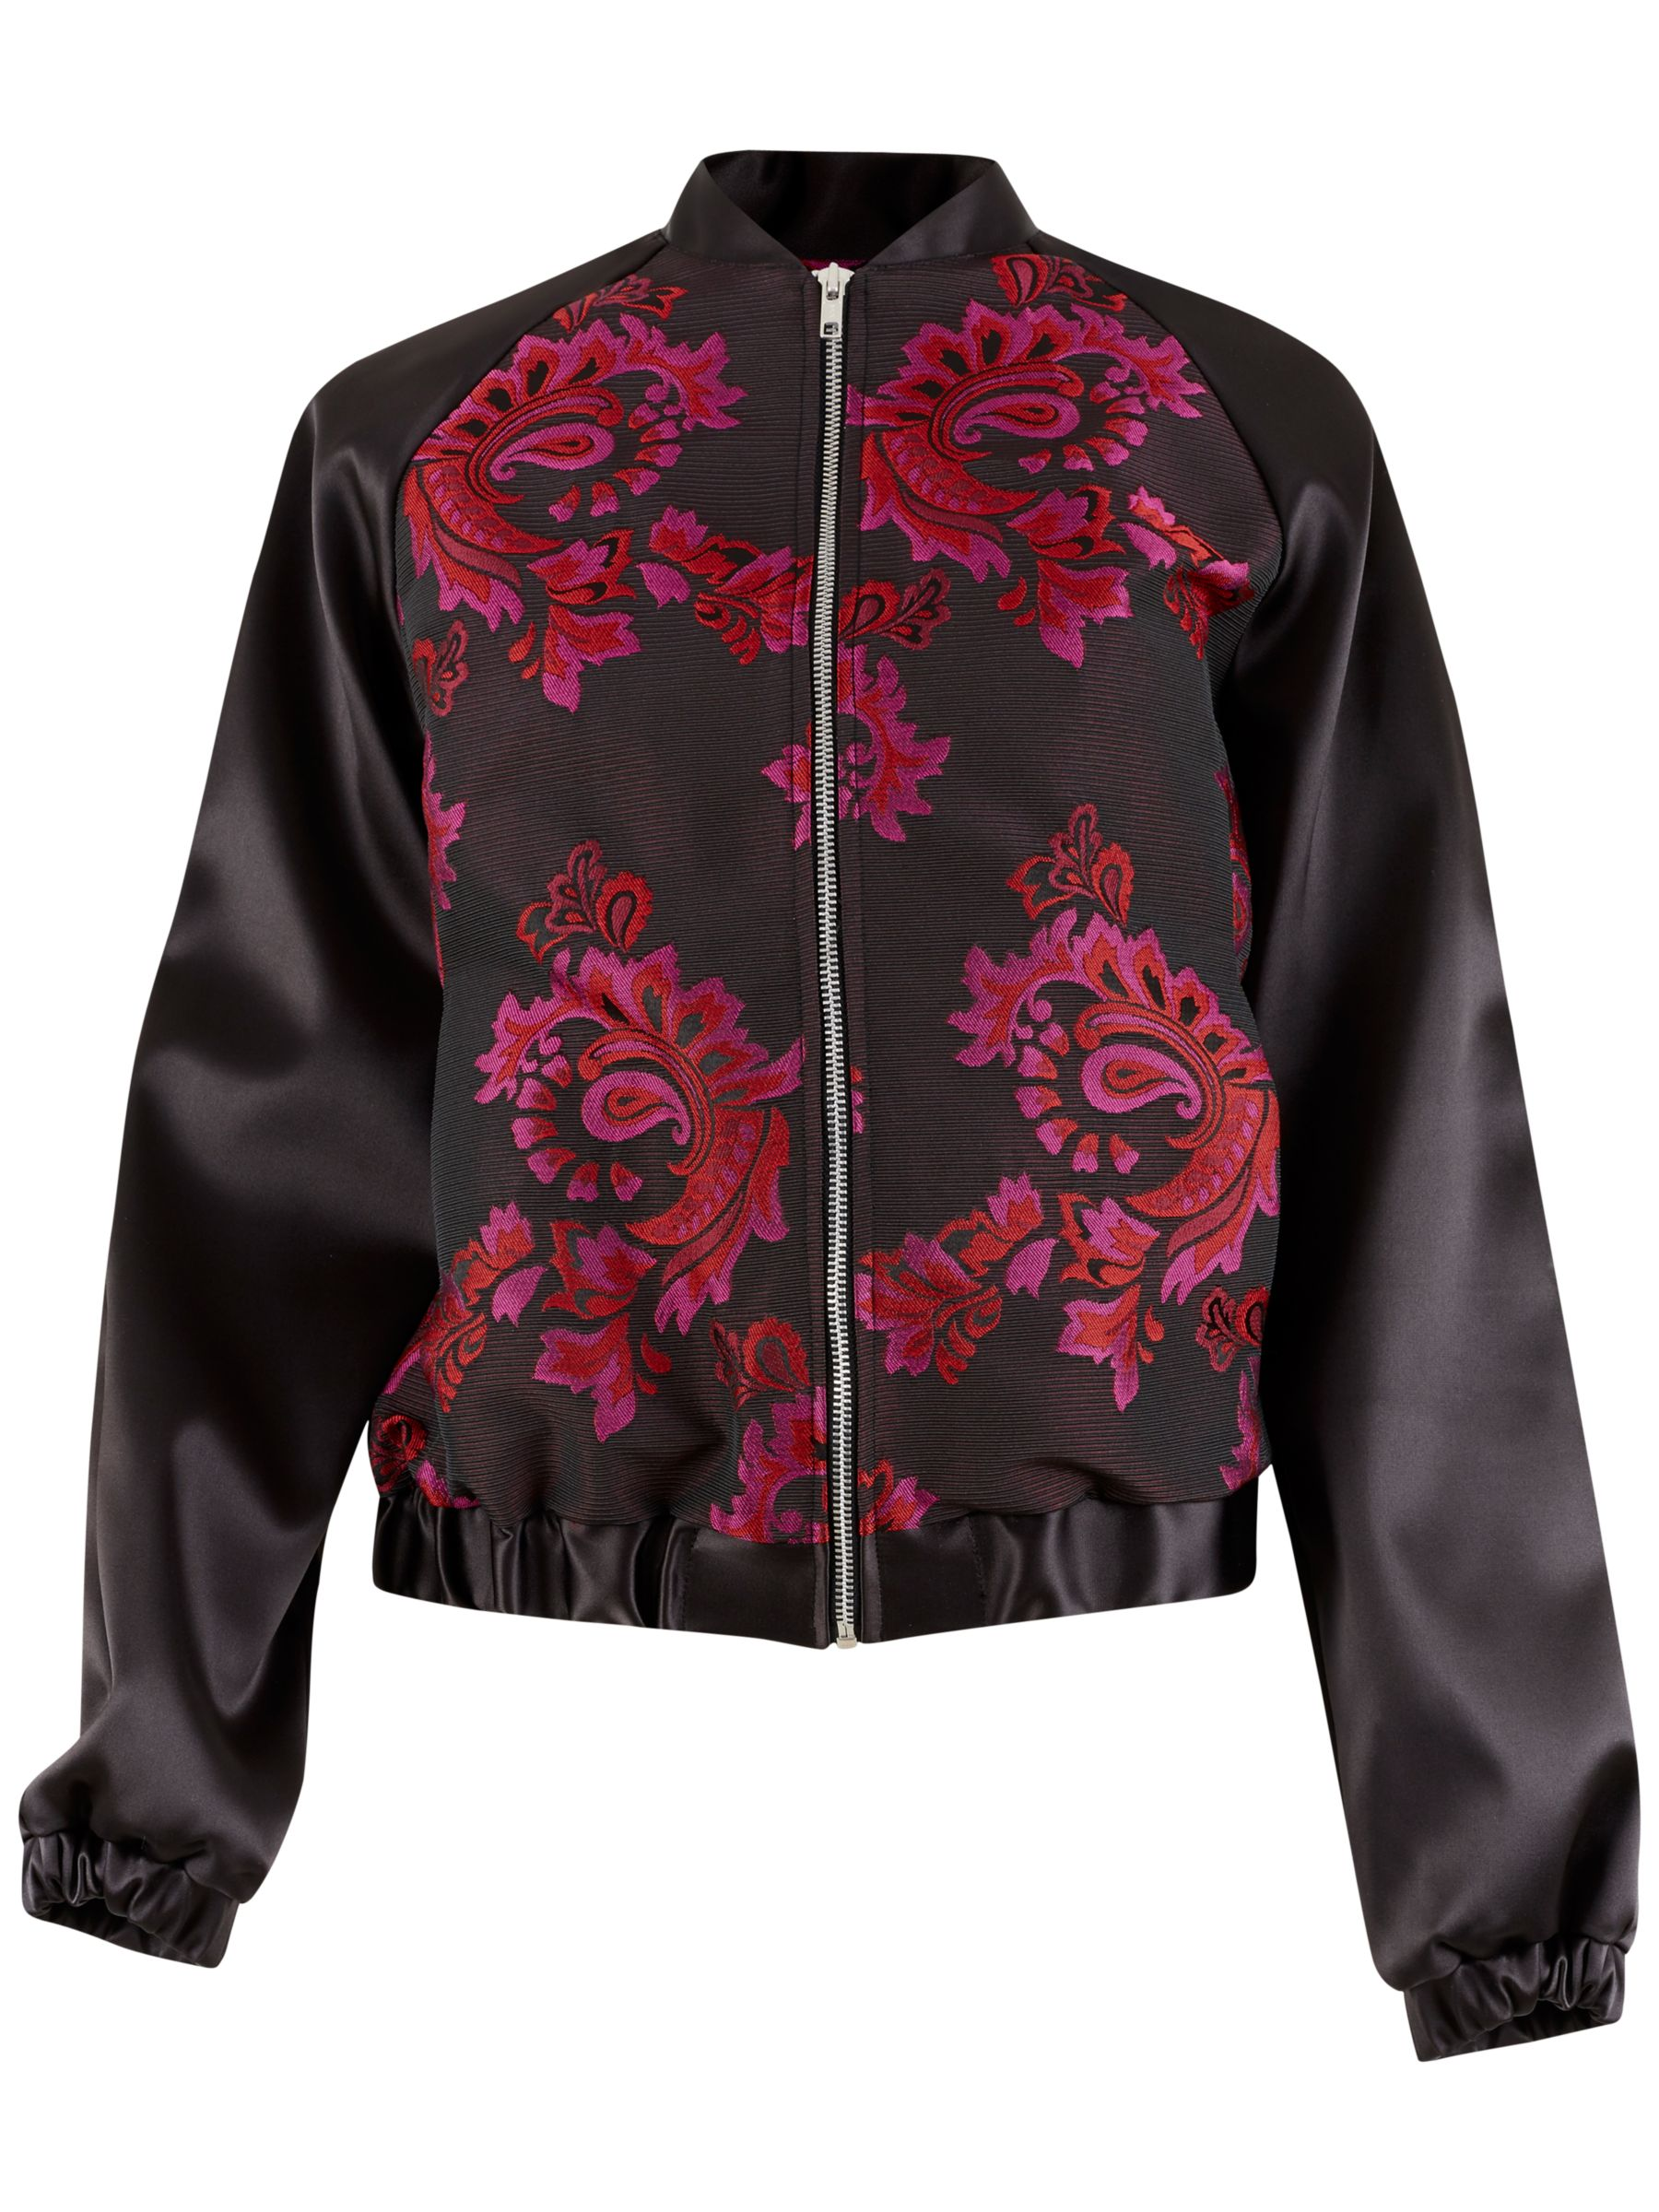 Closet Closet Printed Bomber Jacket, Black